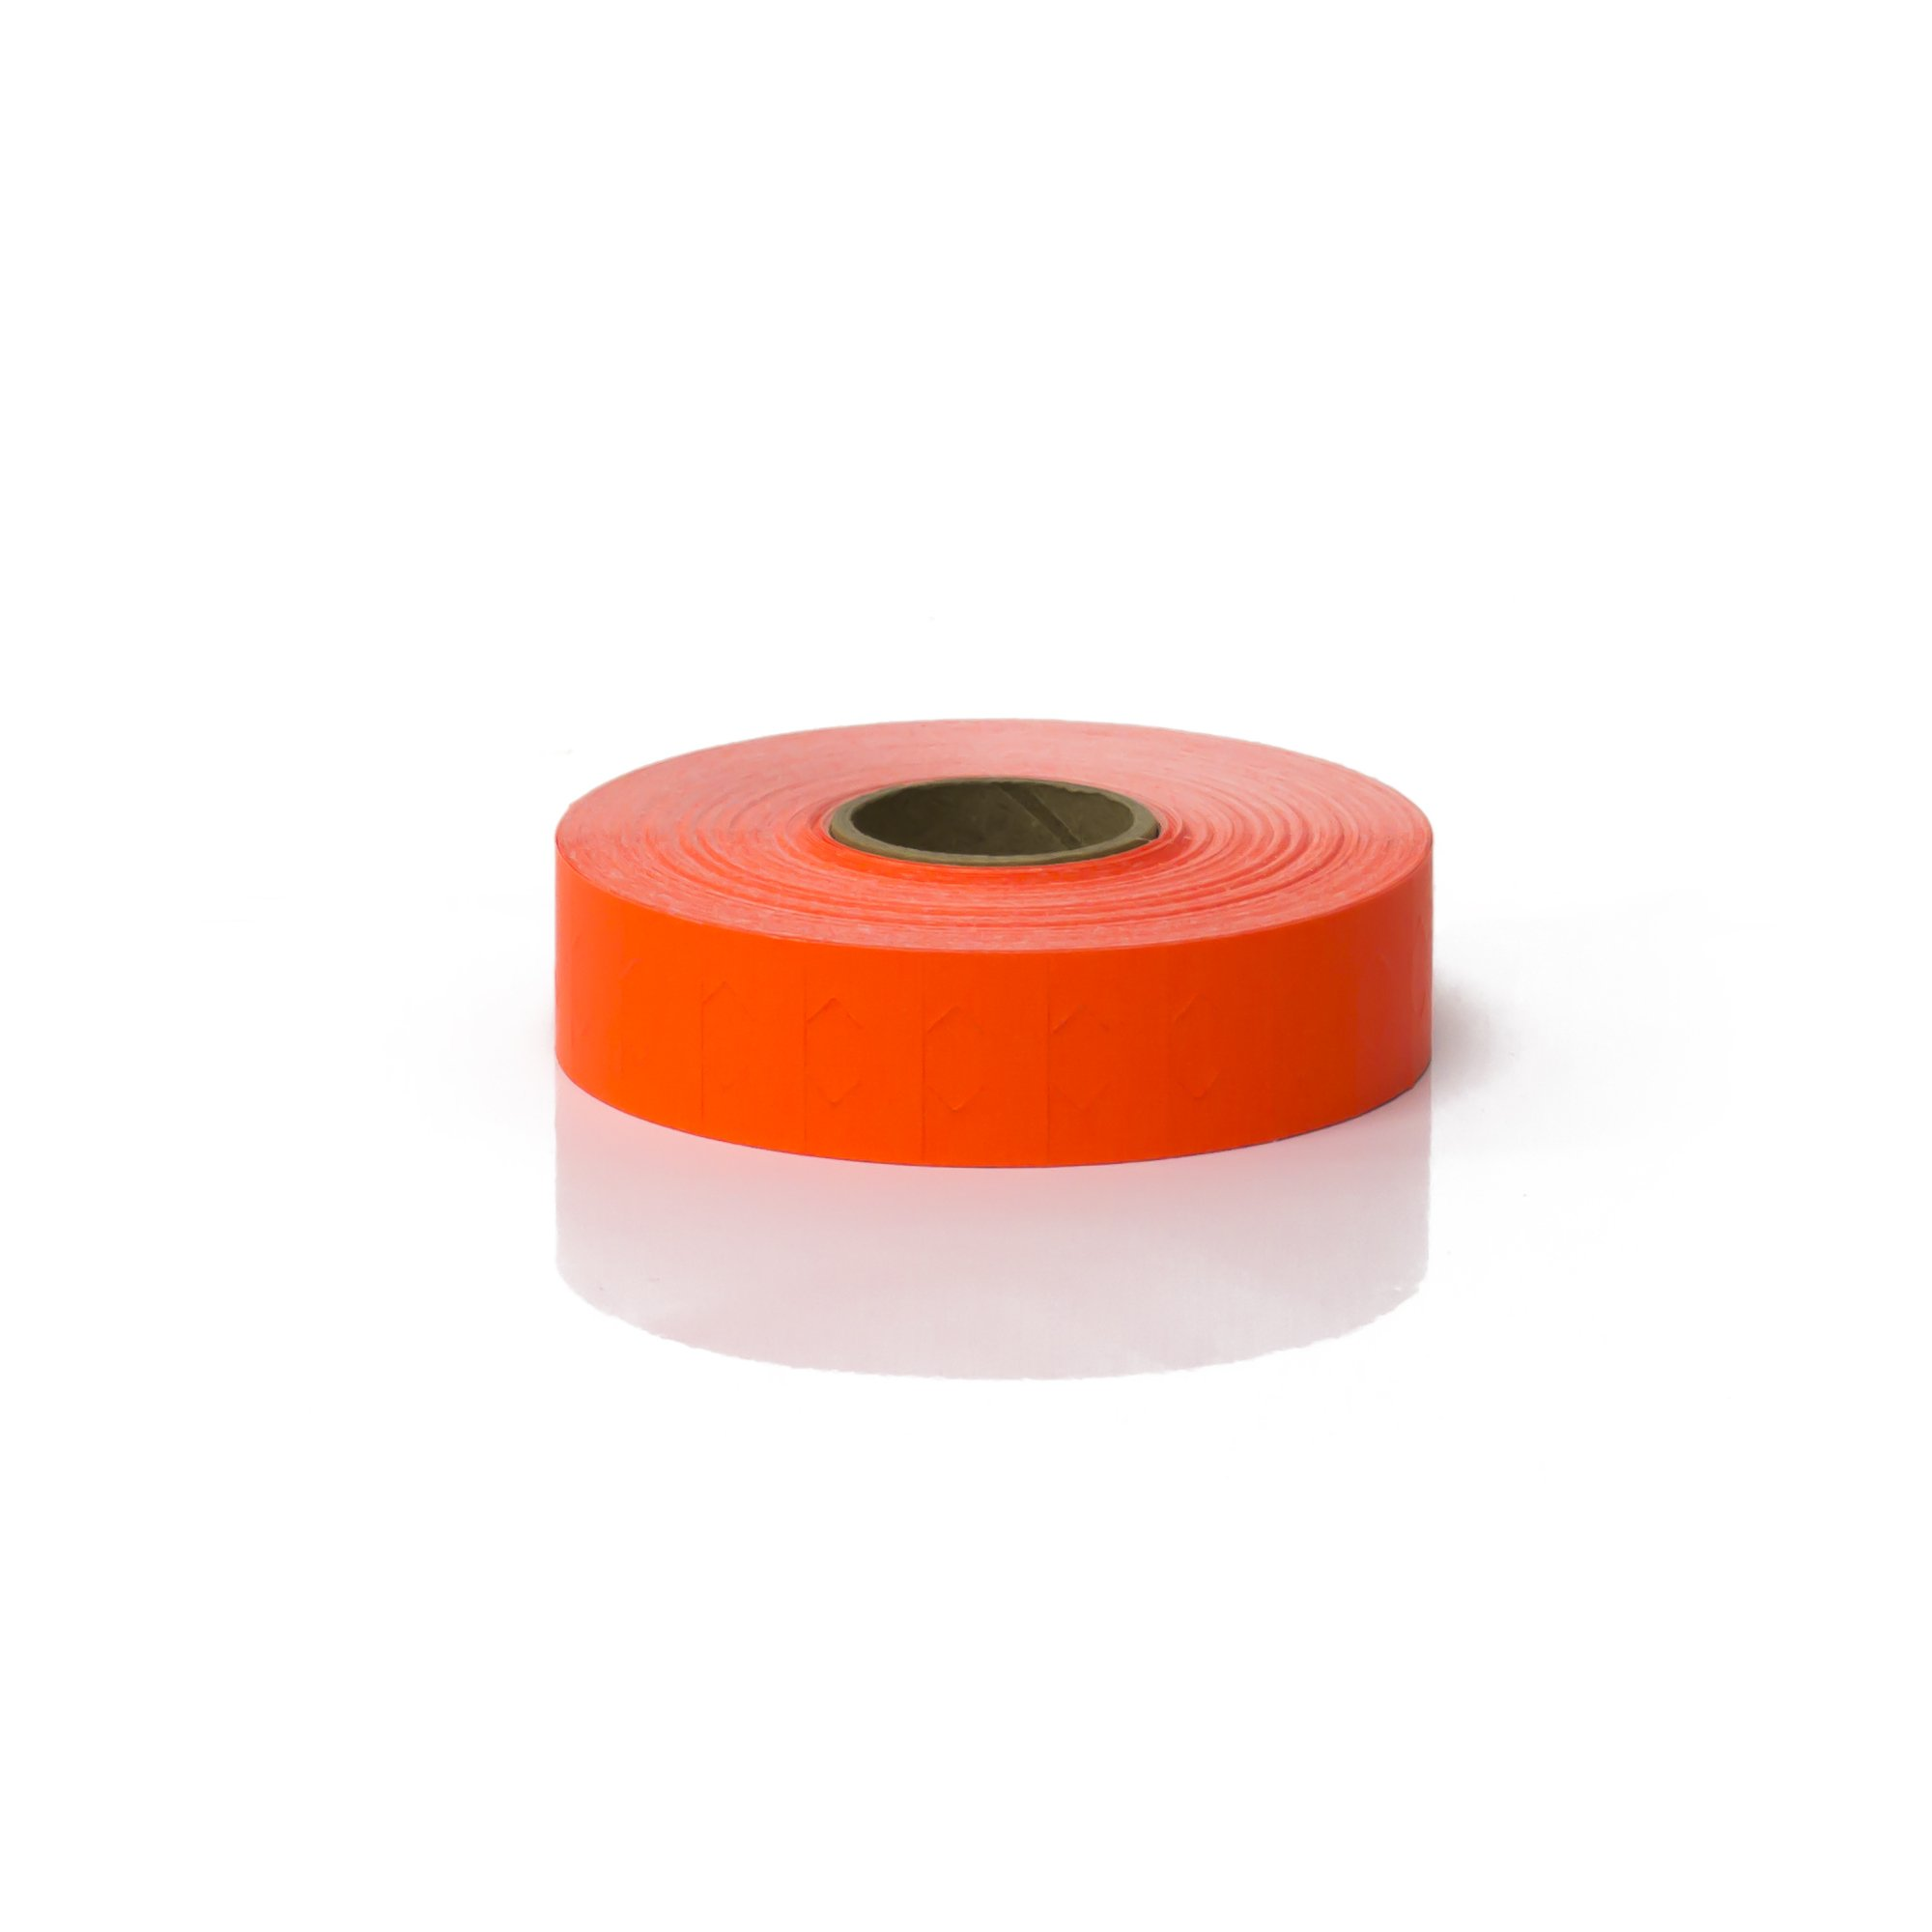 Monarch 1131 Compatible Labels - Fluorescent Red - 20,000 Labels - Pack with 8 rolls - Labels for Us by Labels for Us (Image #4)